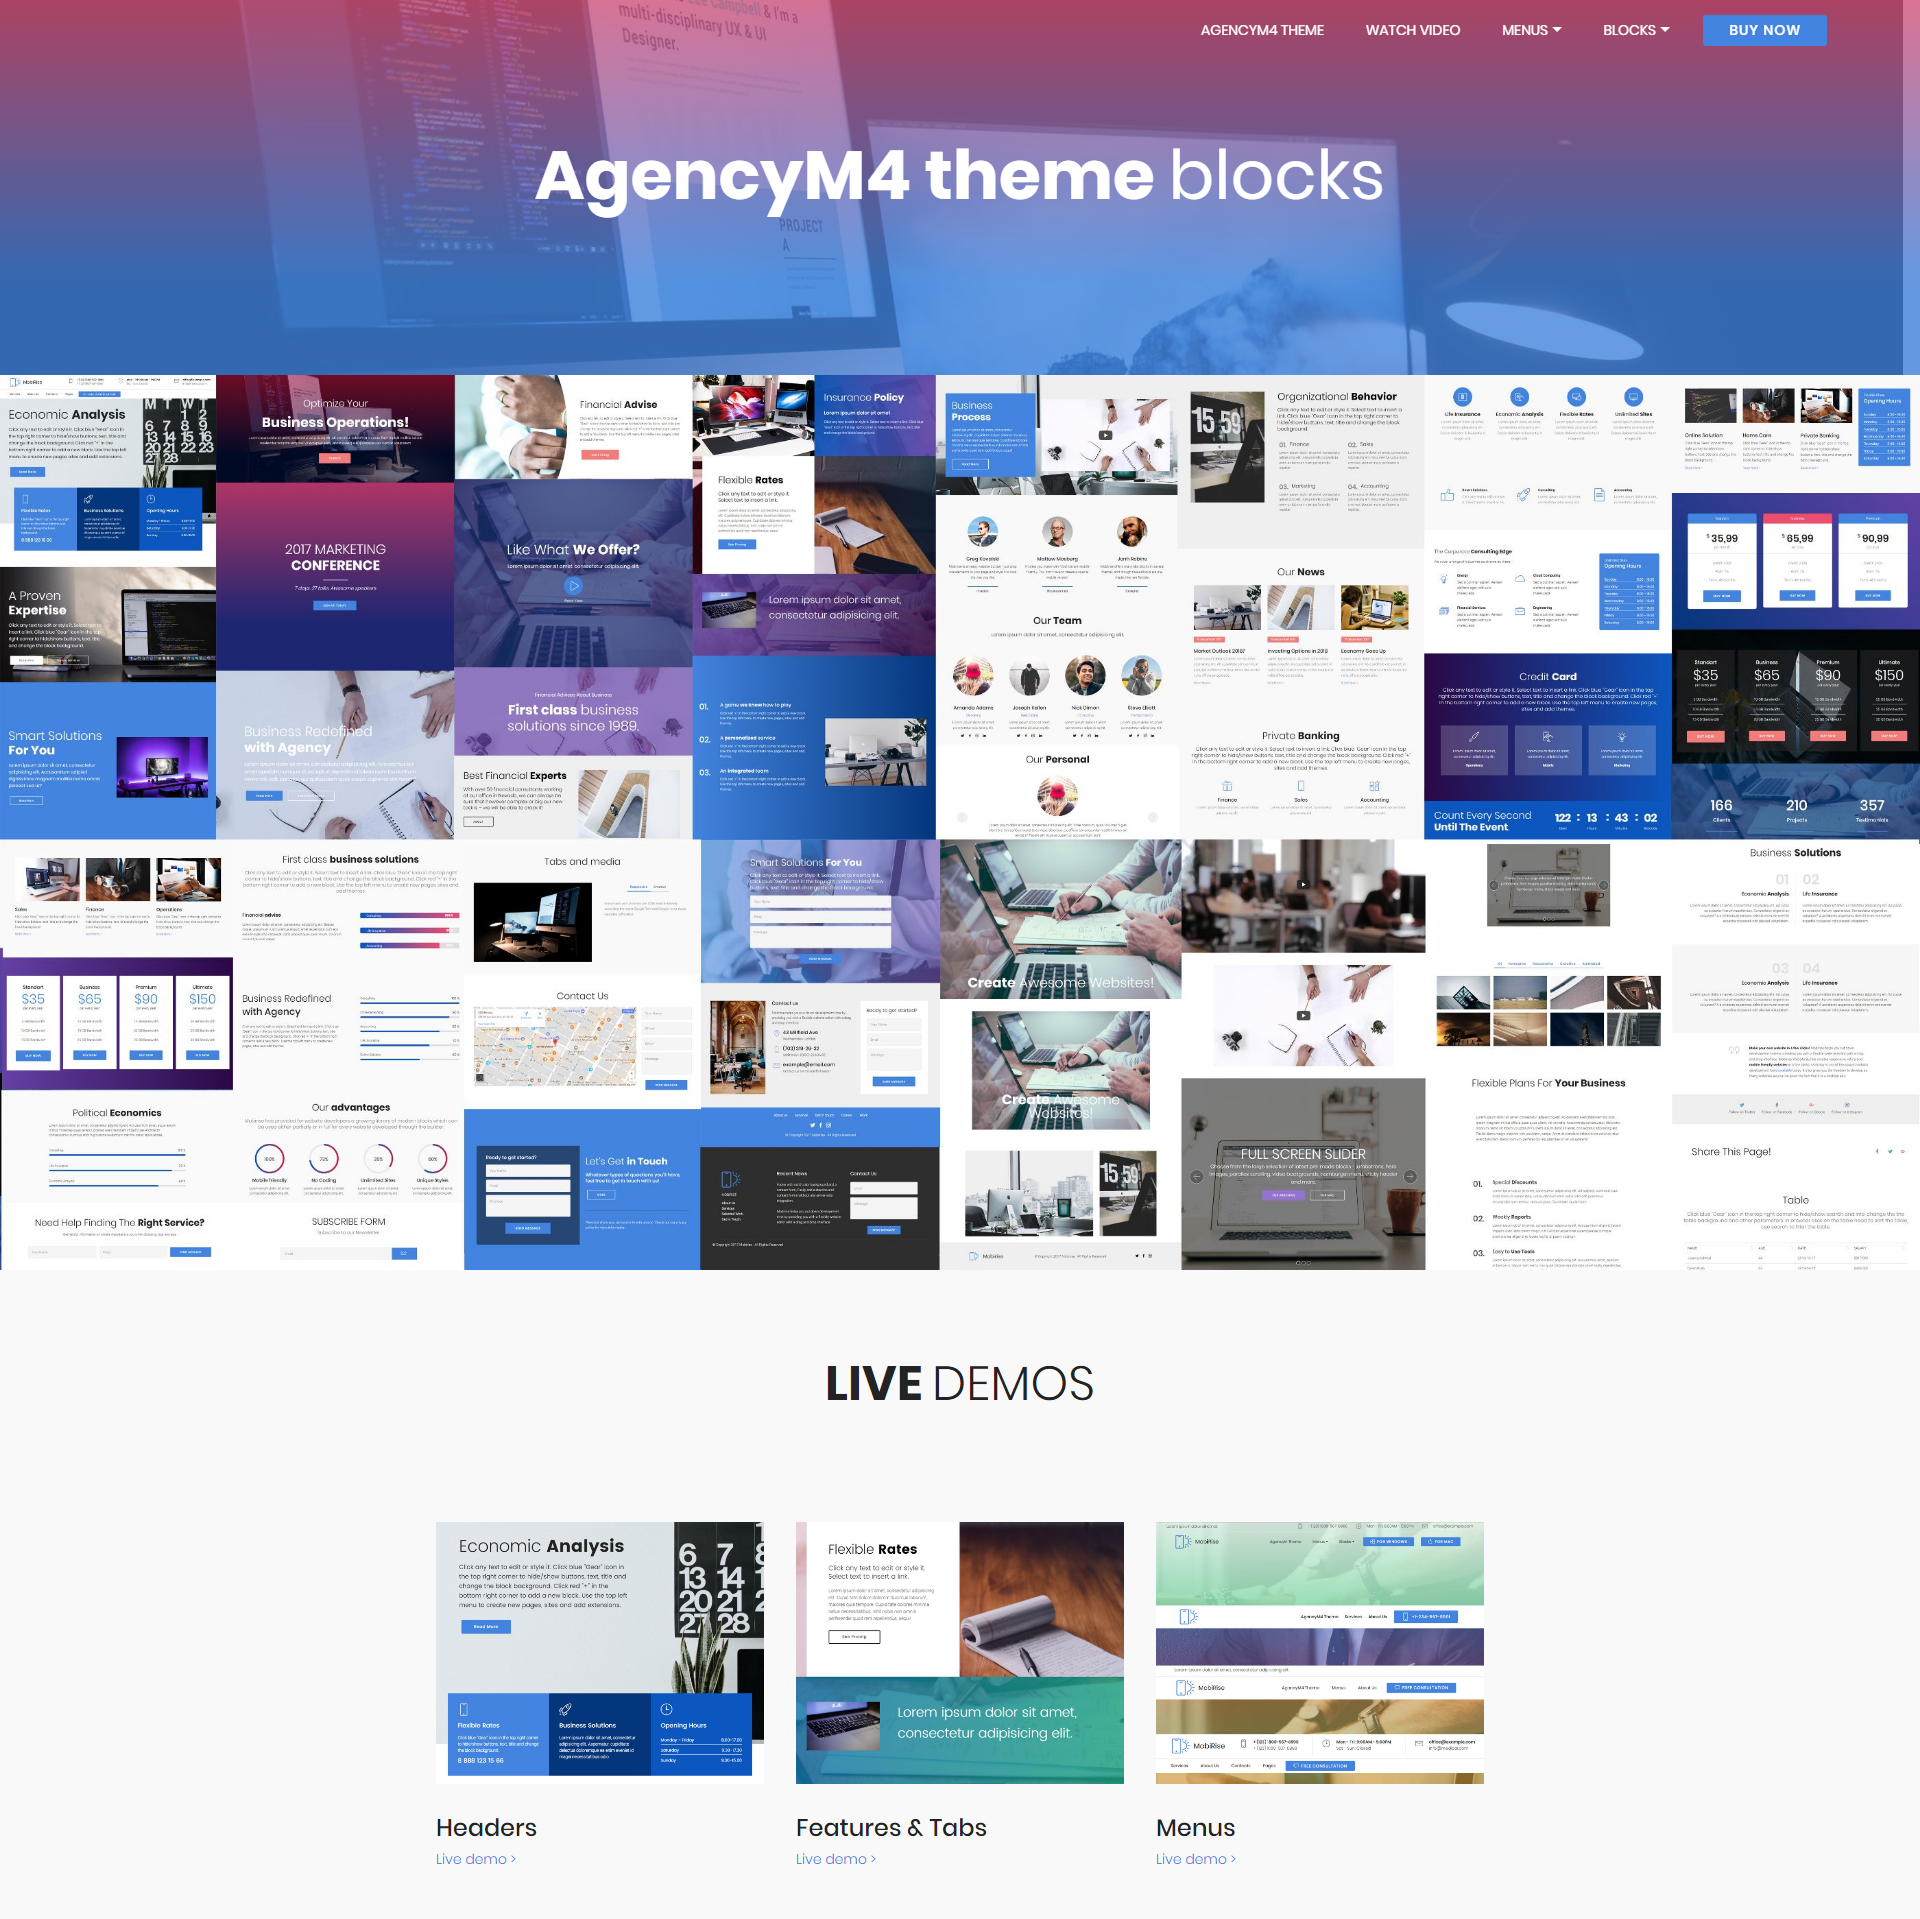 AgencyM4 Theme Bootstrap Blocks